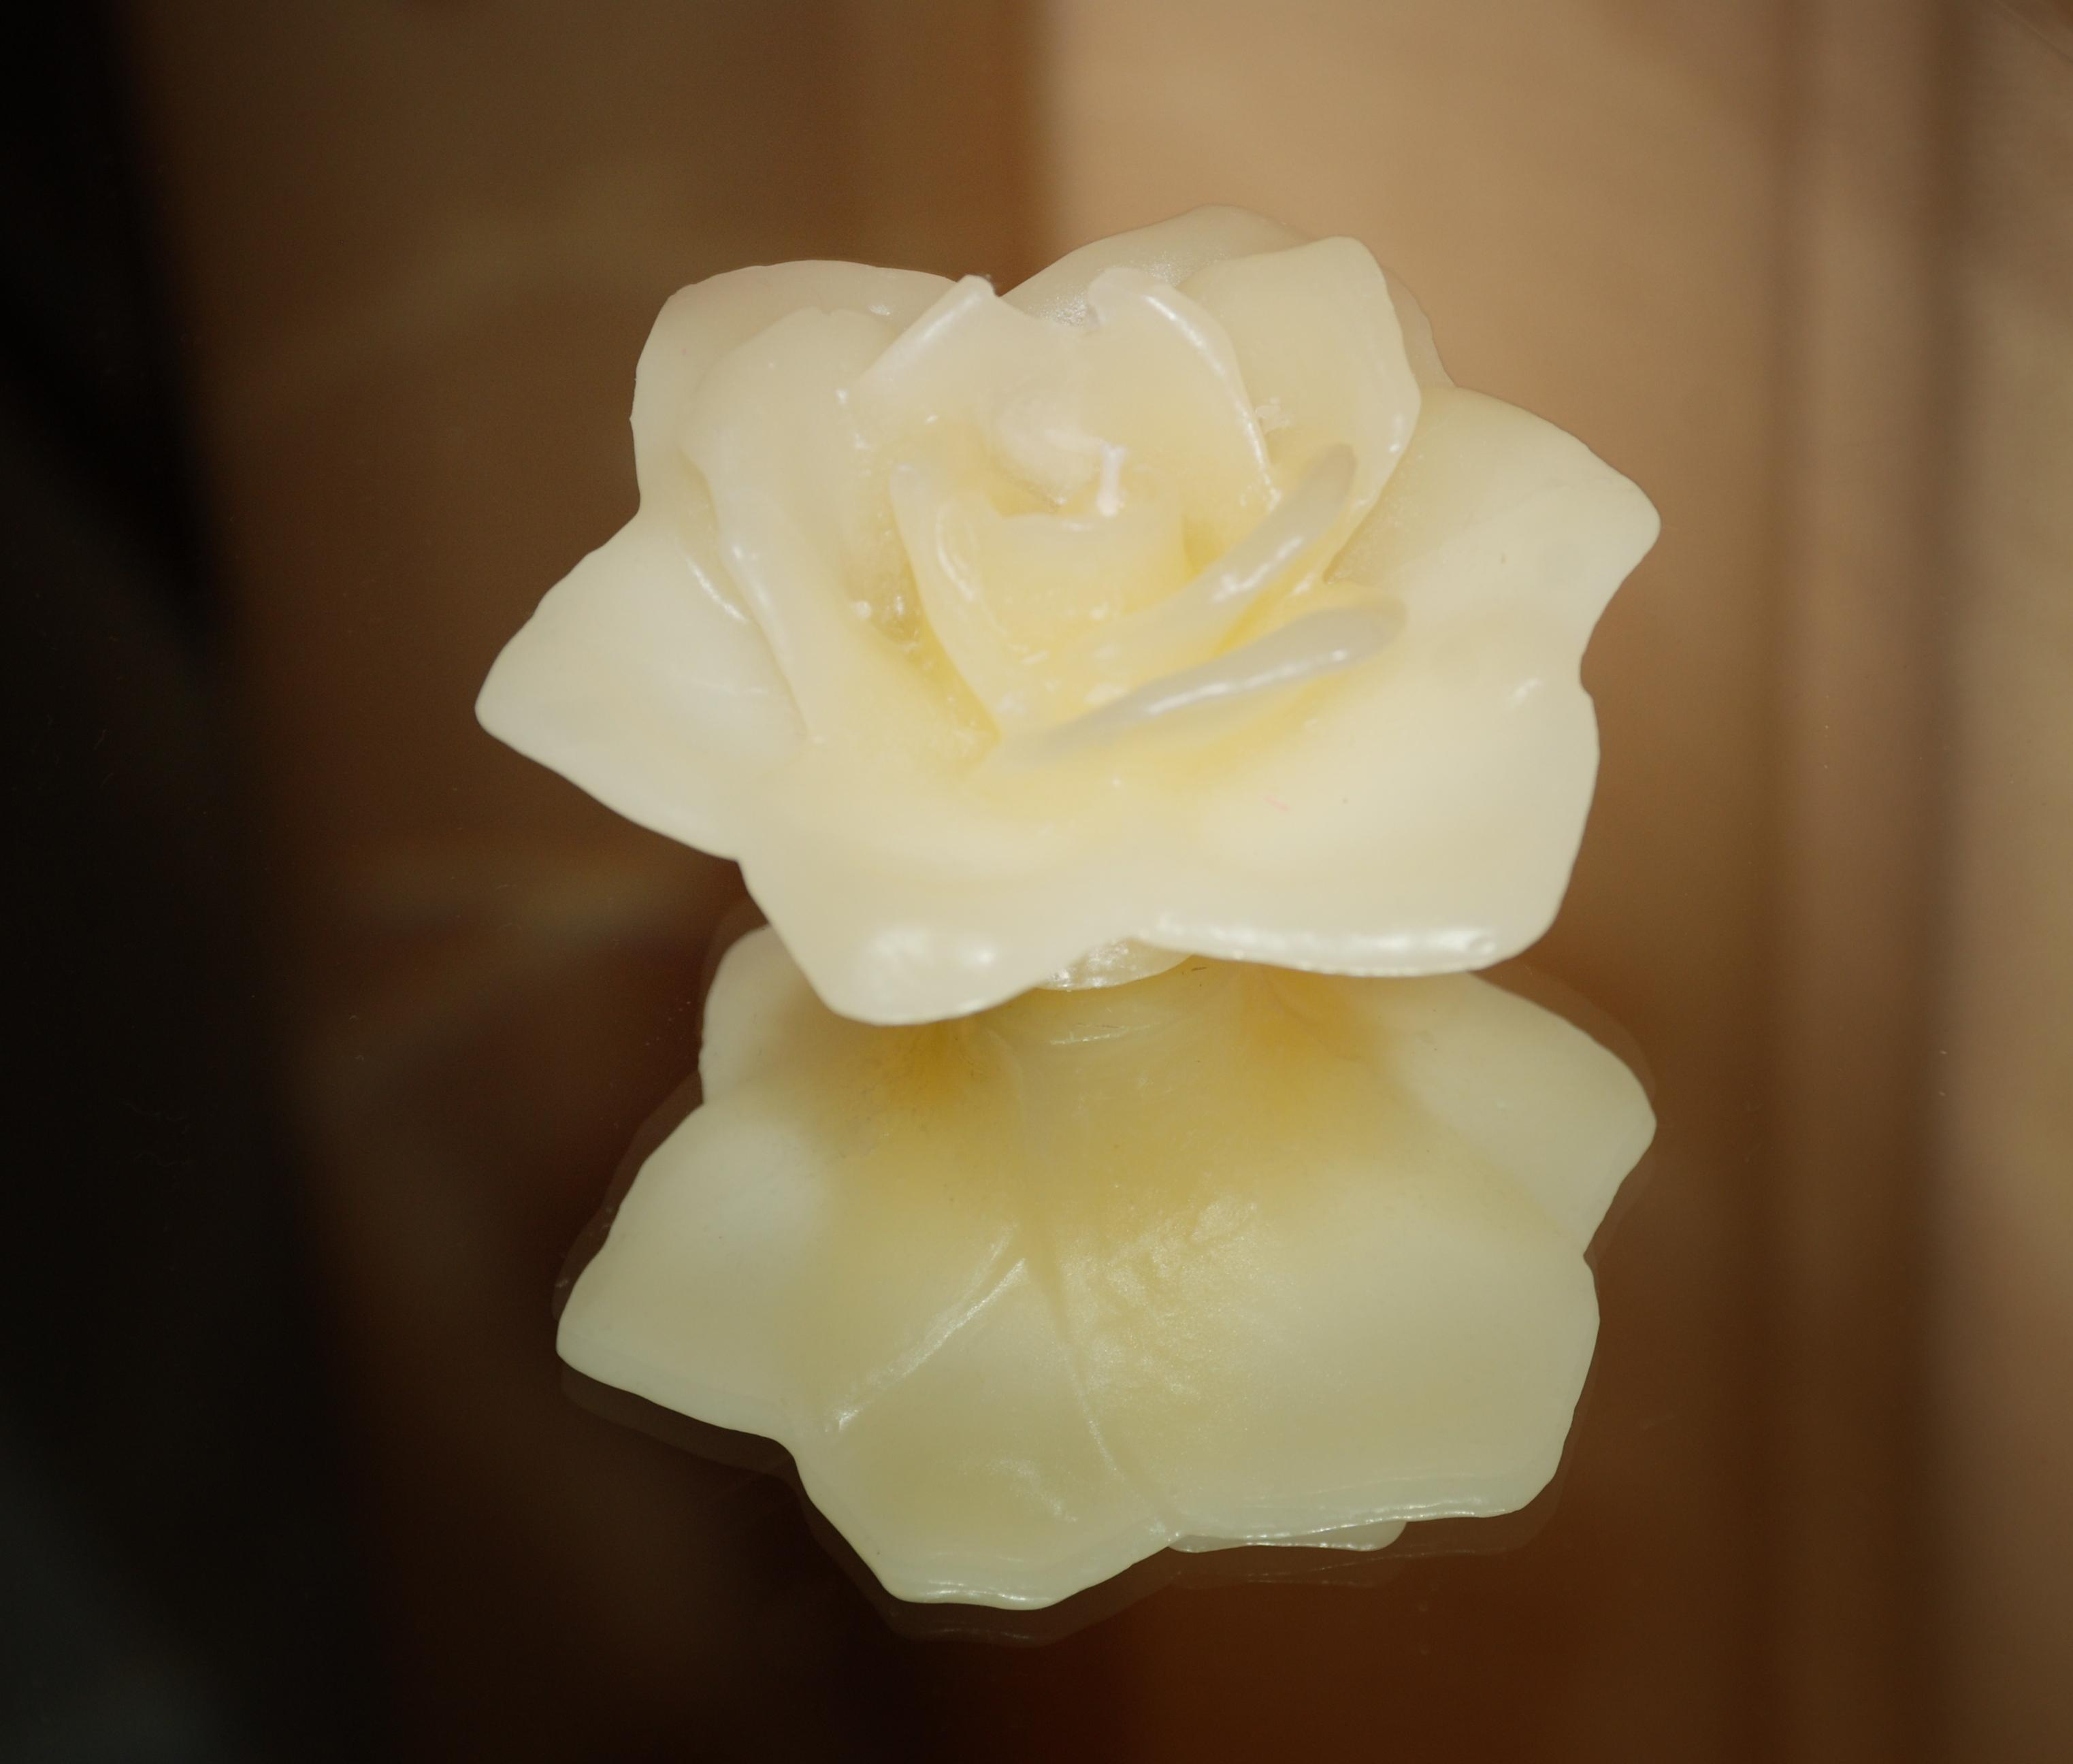 Making your own wax flowers